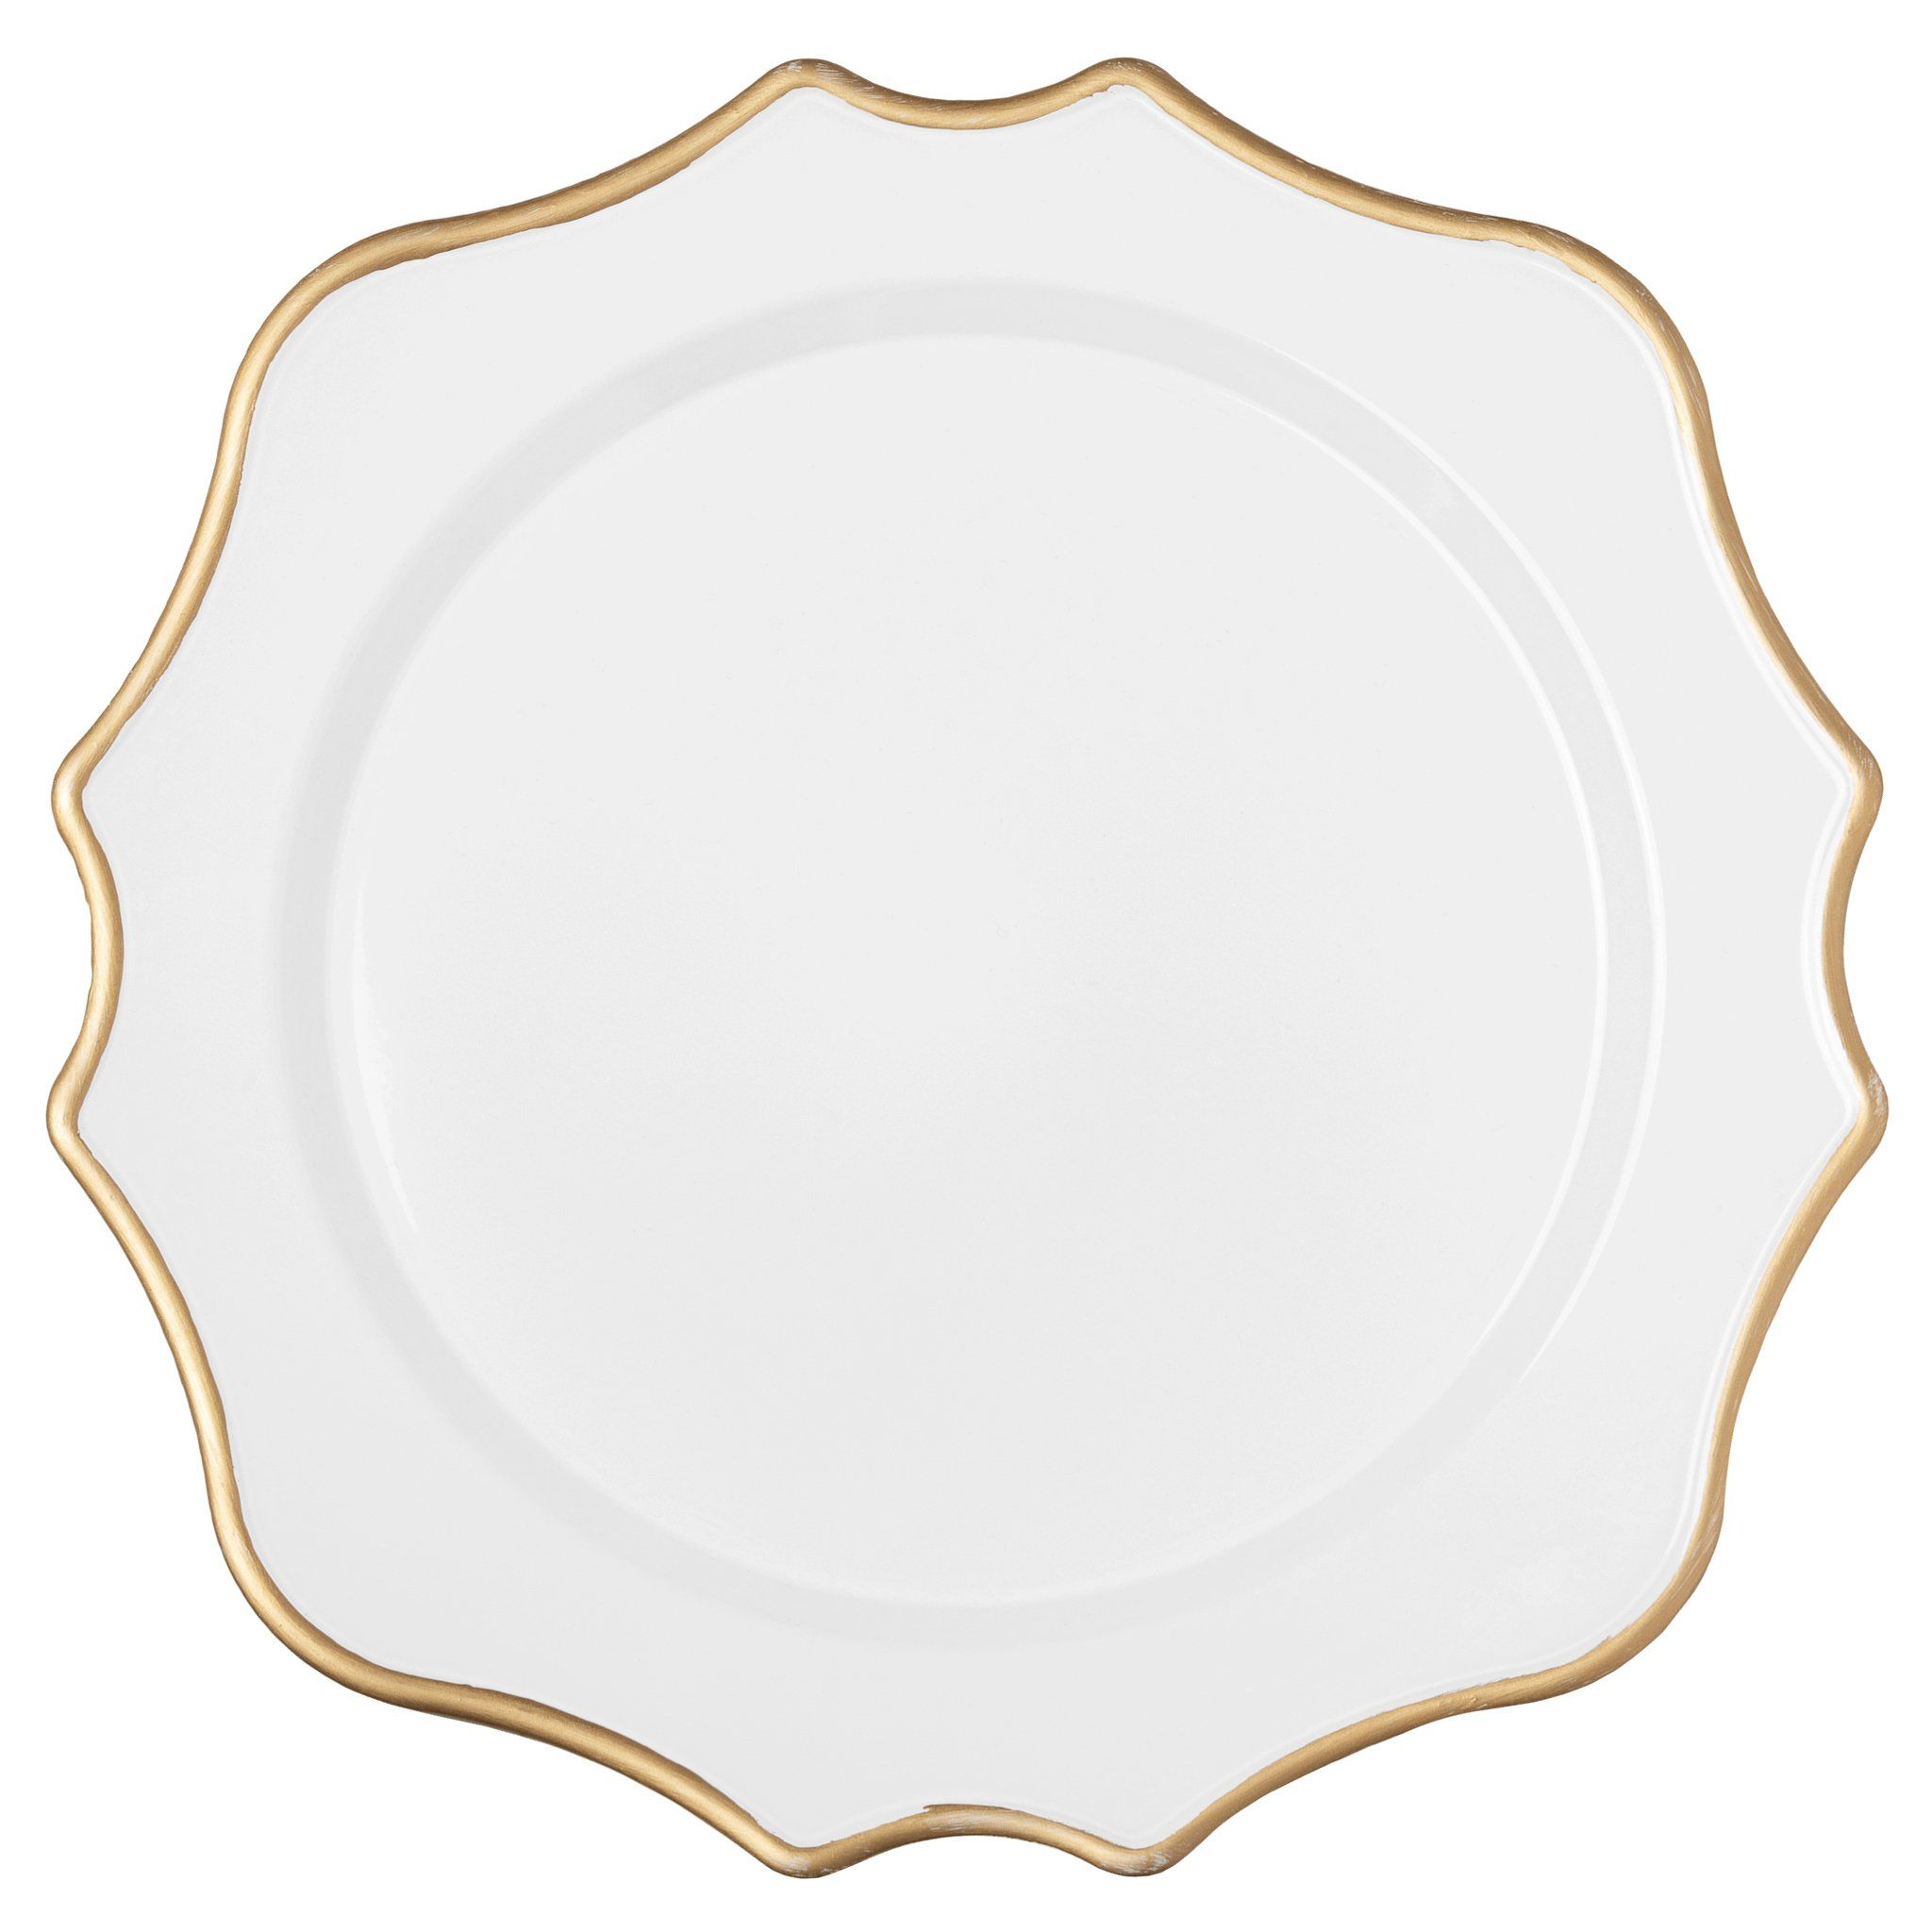 "Lotus Scalloped Acrylic 13"" Charger Plates"